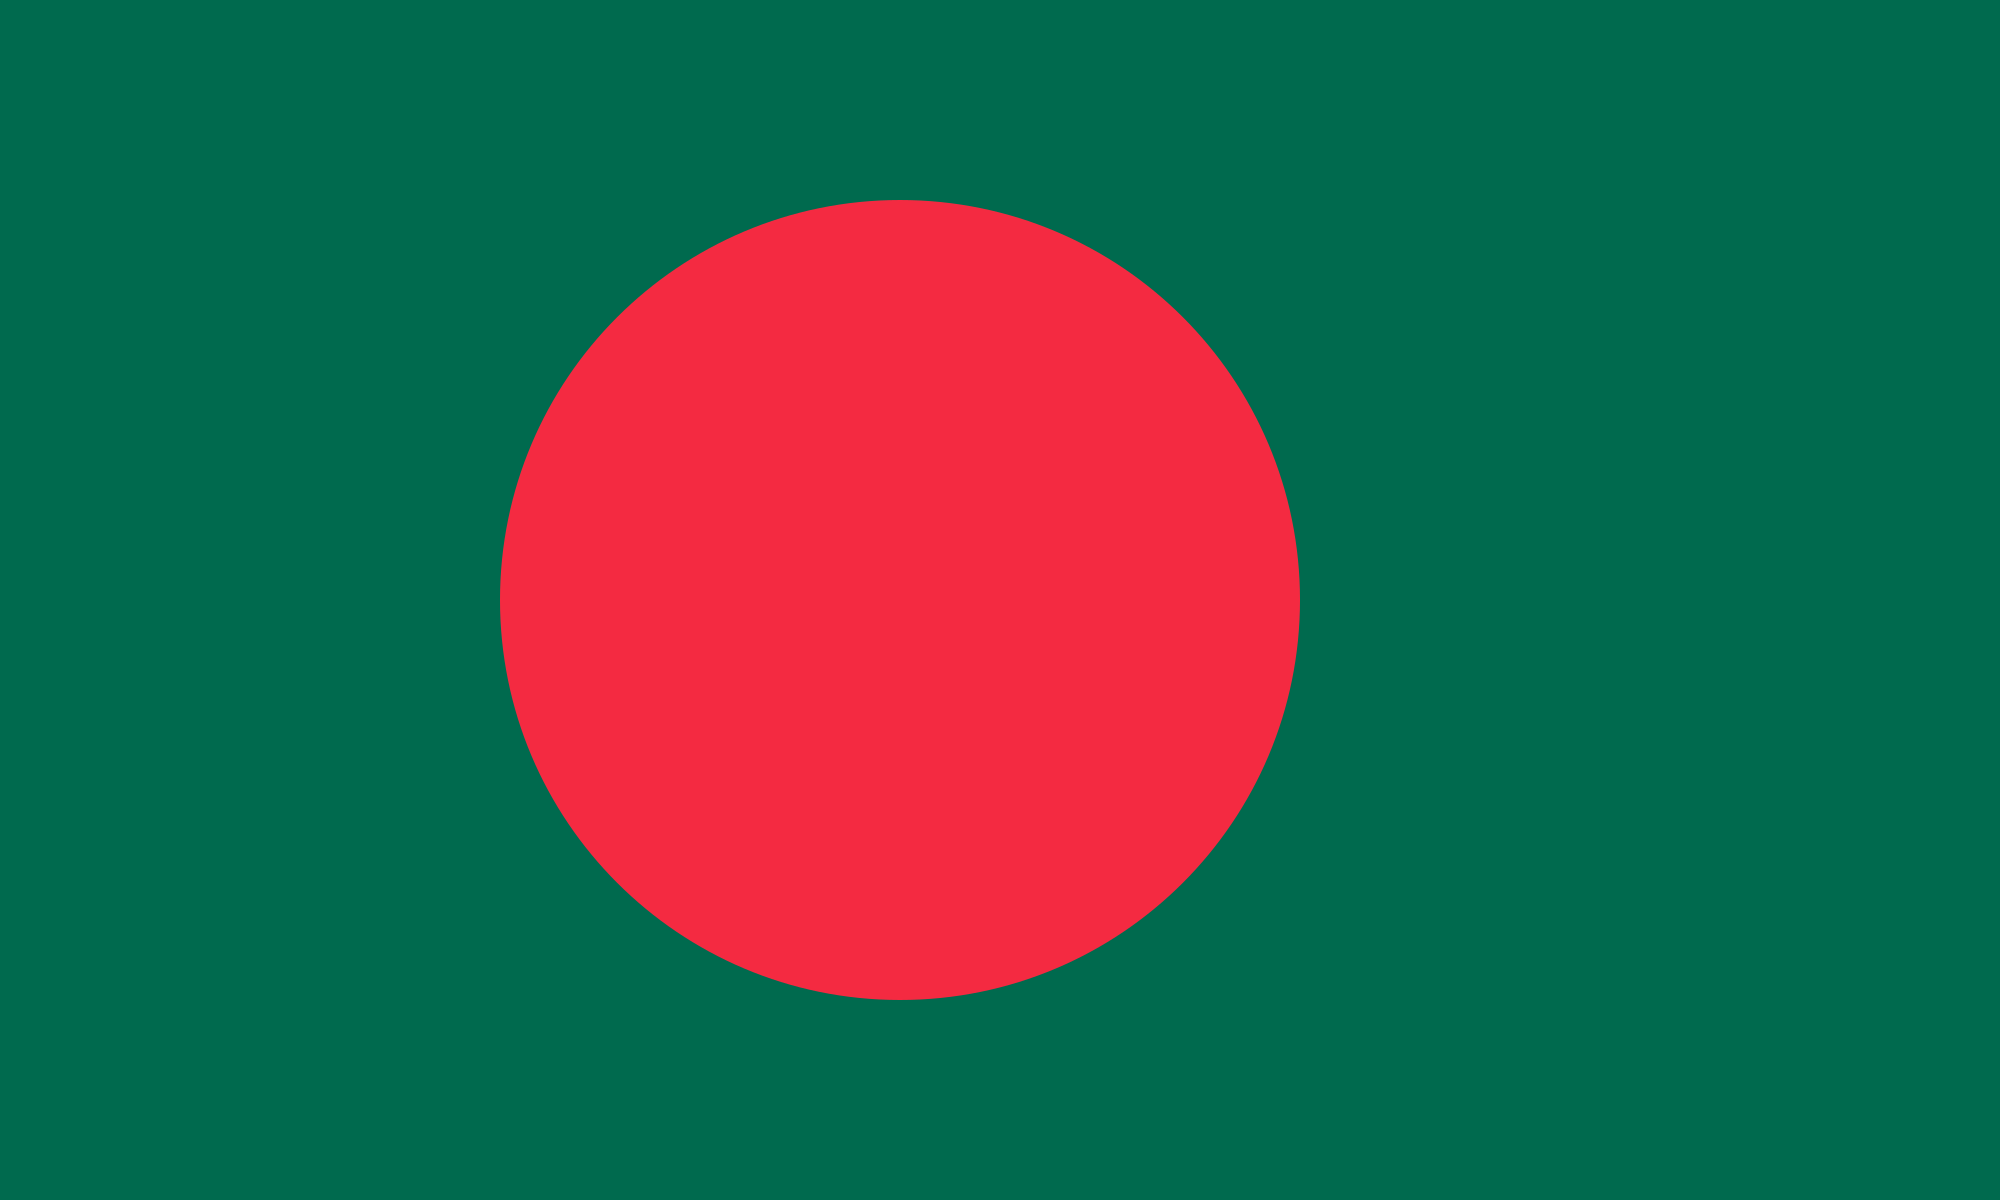 National Flag Of Bangladesh